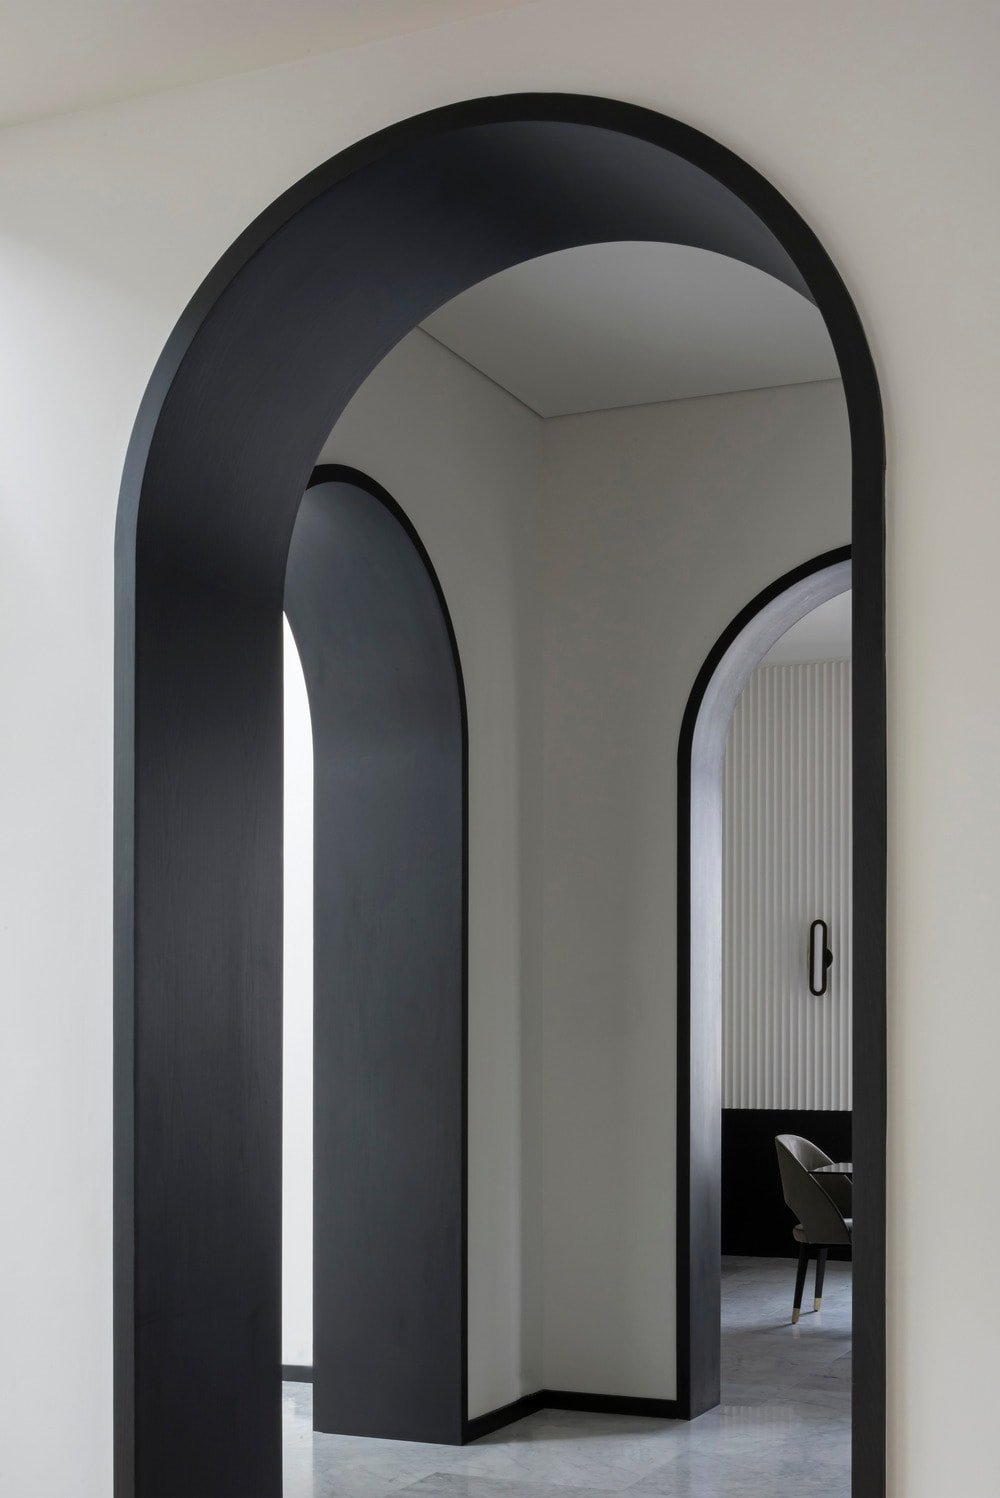 This is a look at the arched entryways of the house that has black tones on the inside to contrast the white walls and ceiling.